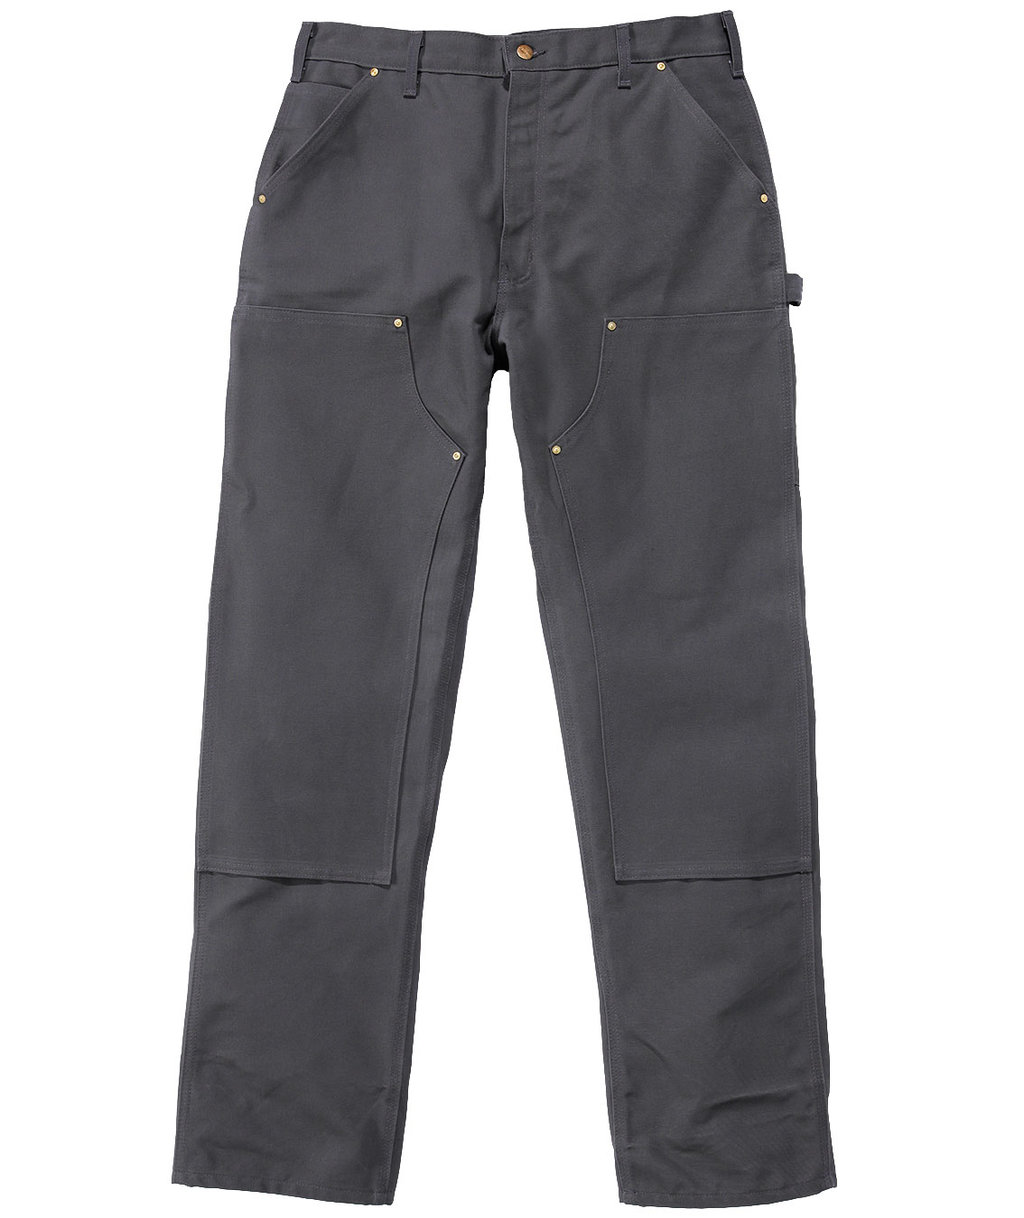 Carhartt arbejdsbukser Firm Double Front Logger Dungaree, 100% bomuld, Grå